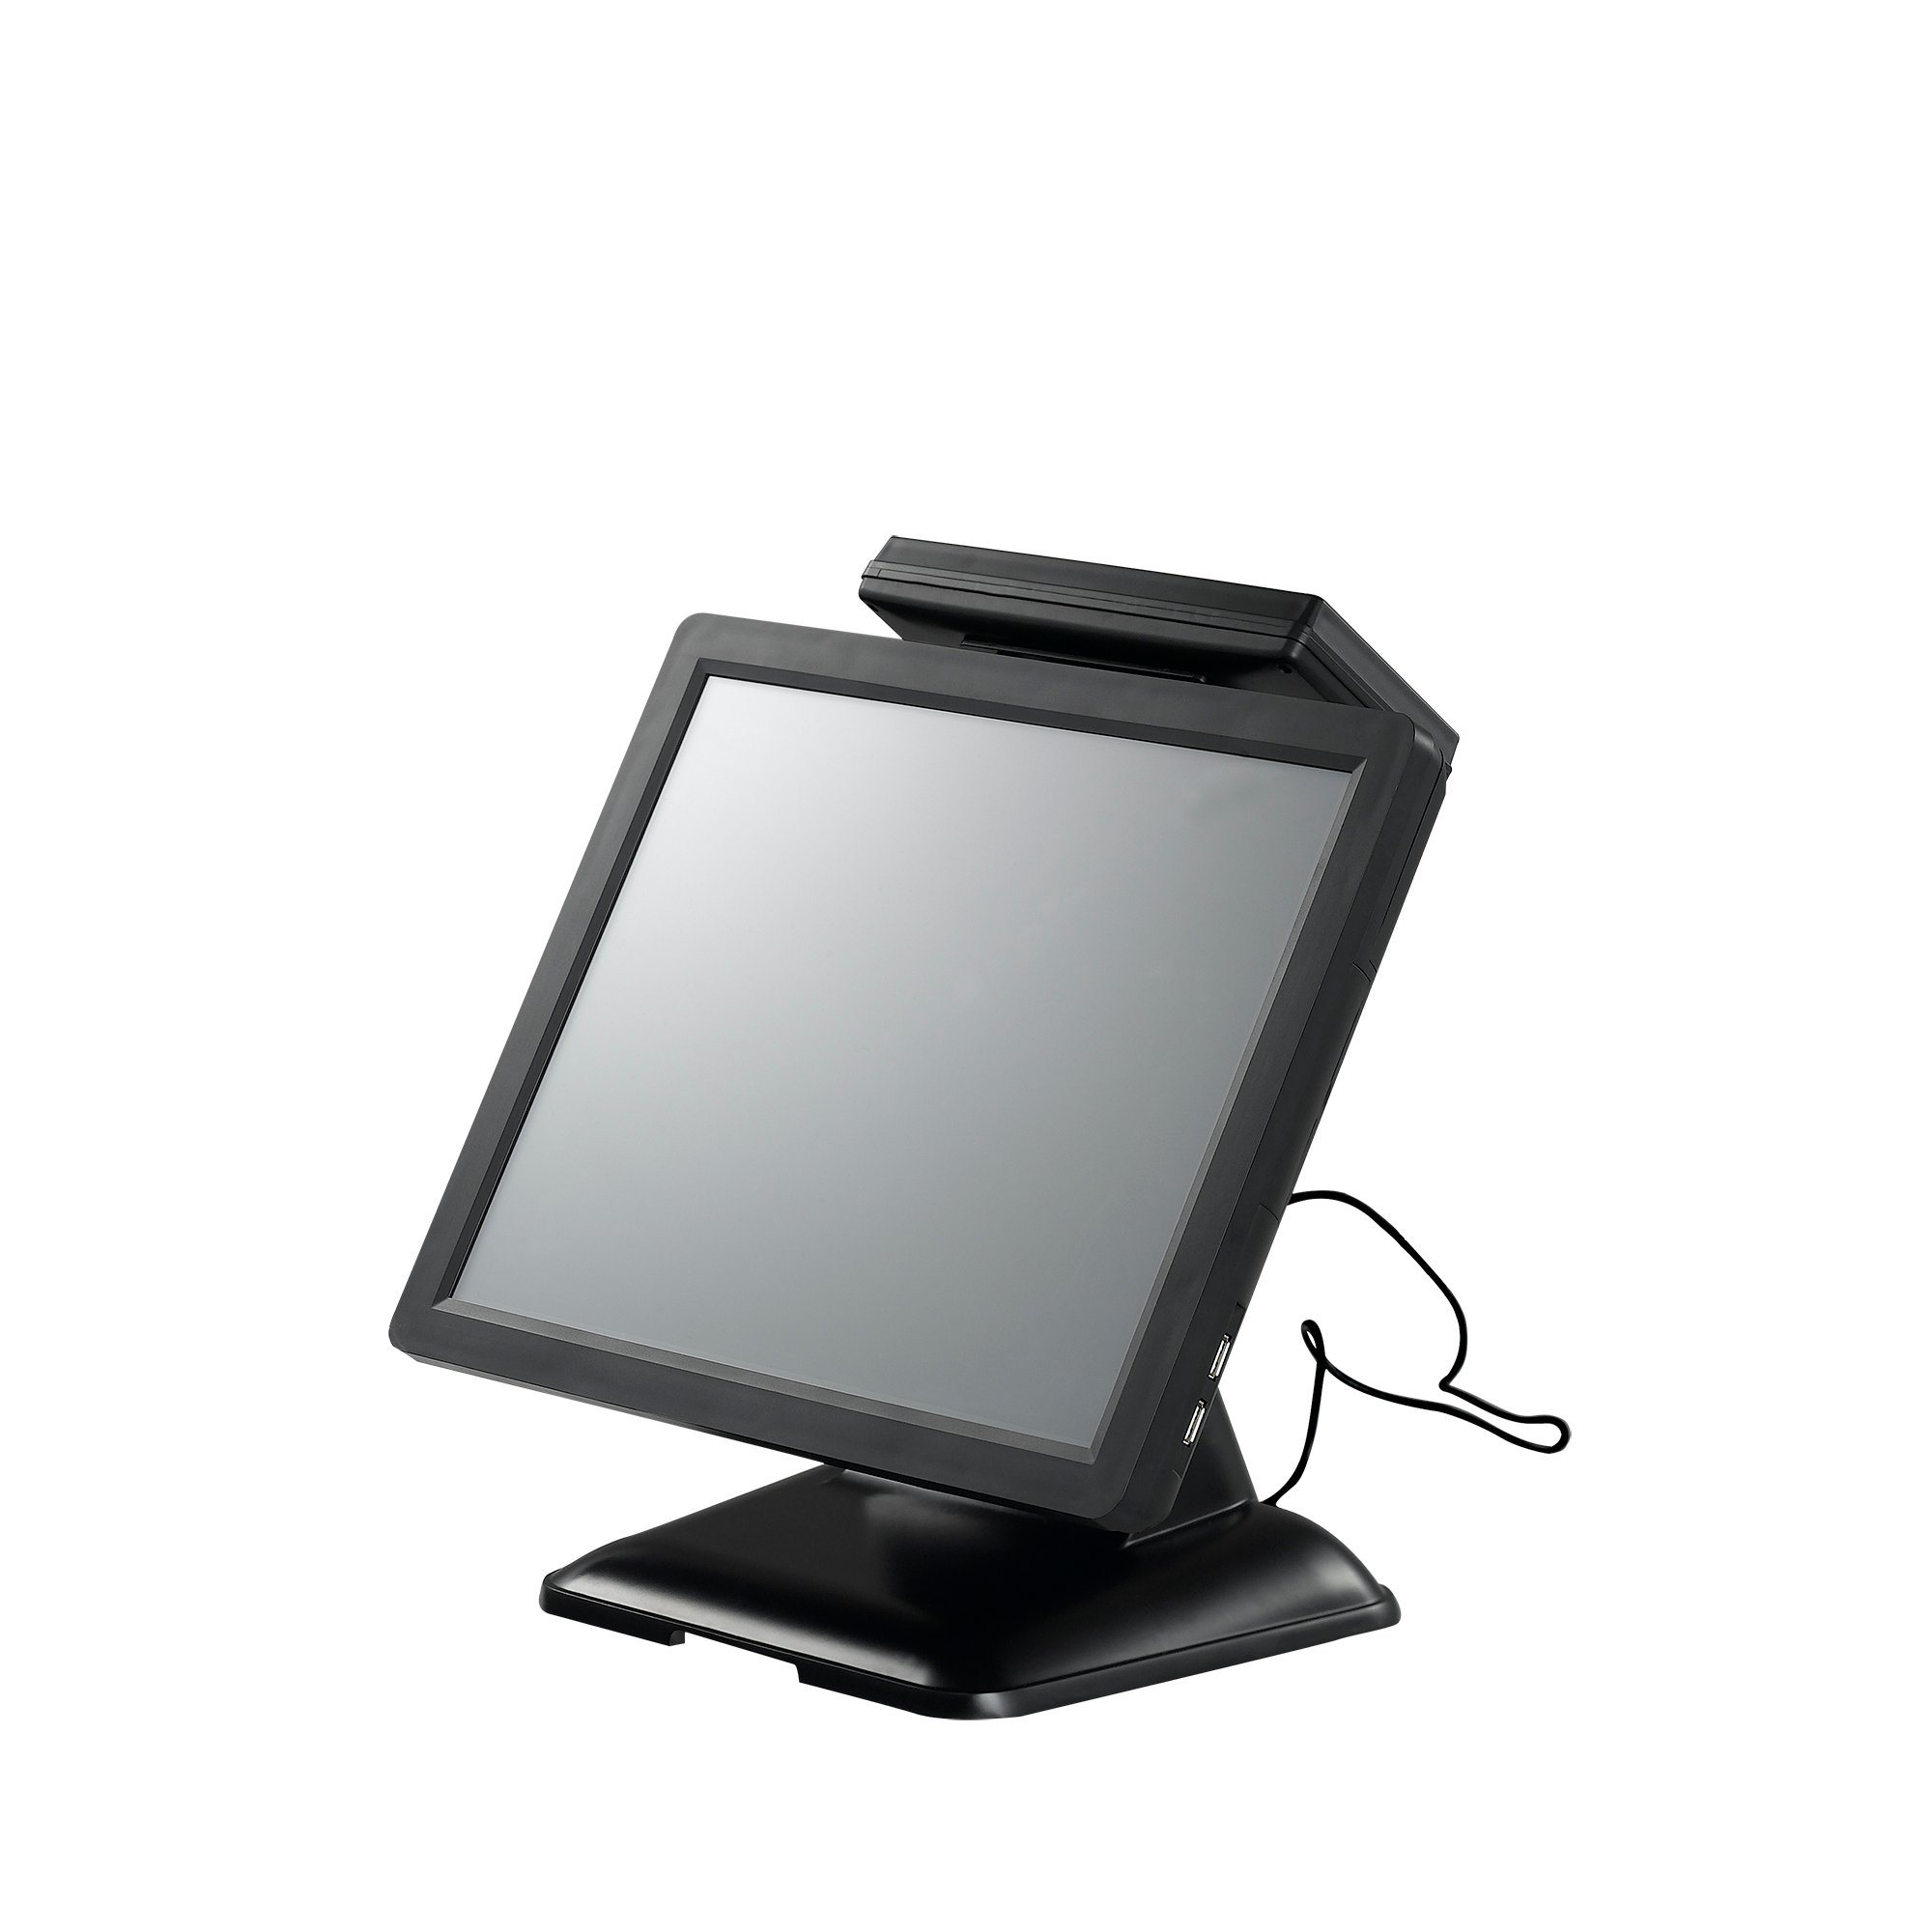 Windows POS with Touch Screeen for Supermarket